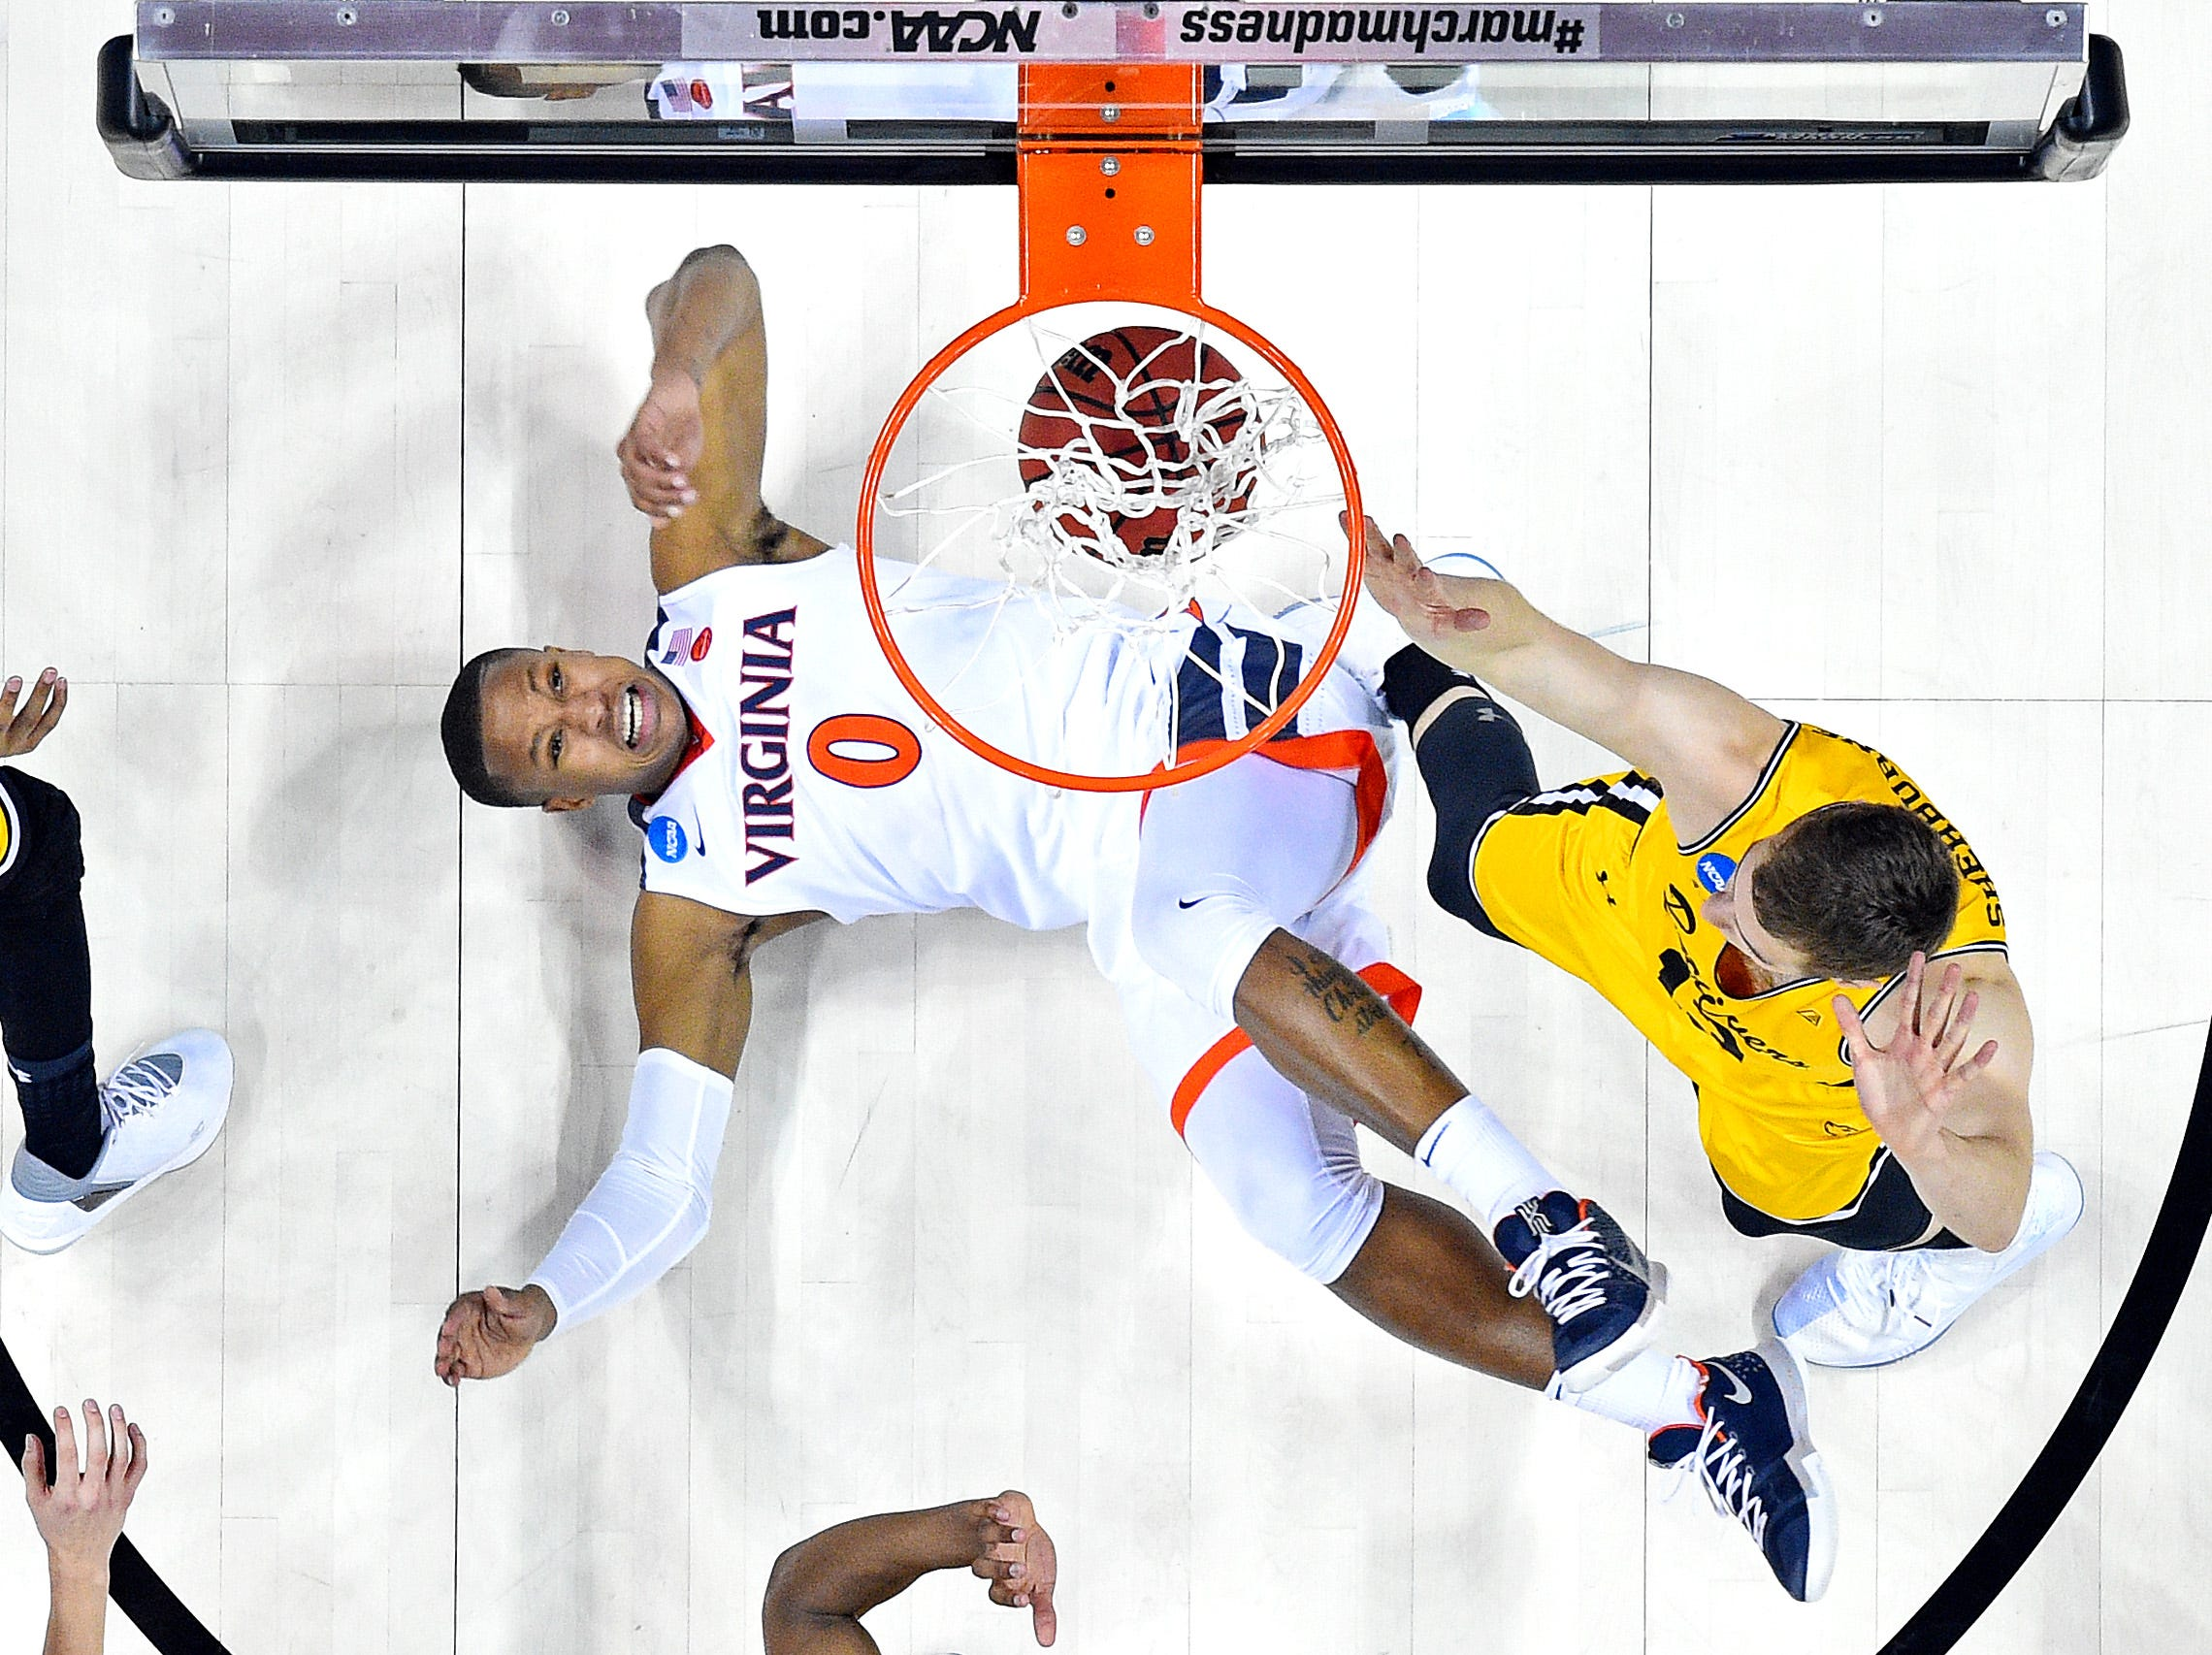 March 16: The Virginia Cavaliers' Devon Hall drives to the basket against UMBC Retrievers forward Joe Sherburne (13)  in the first round of the NCAA Tournament. UMBC became the first 16-seed to upset a No. 1.